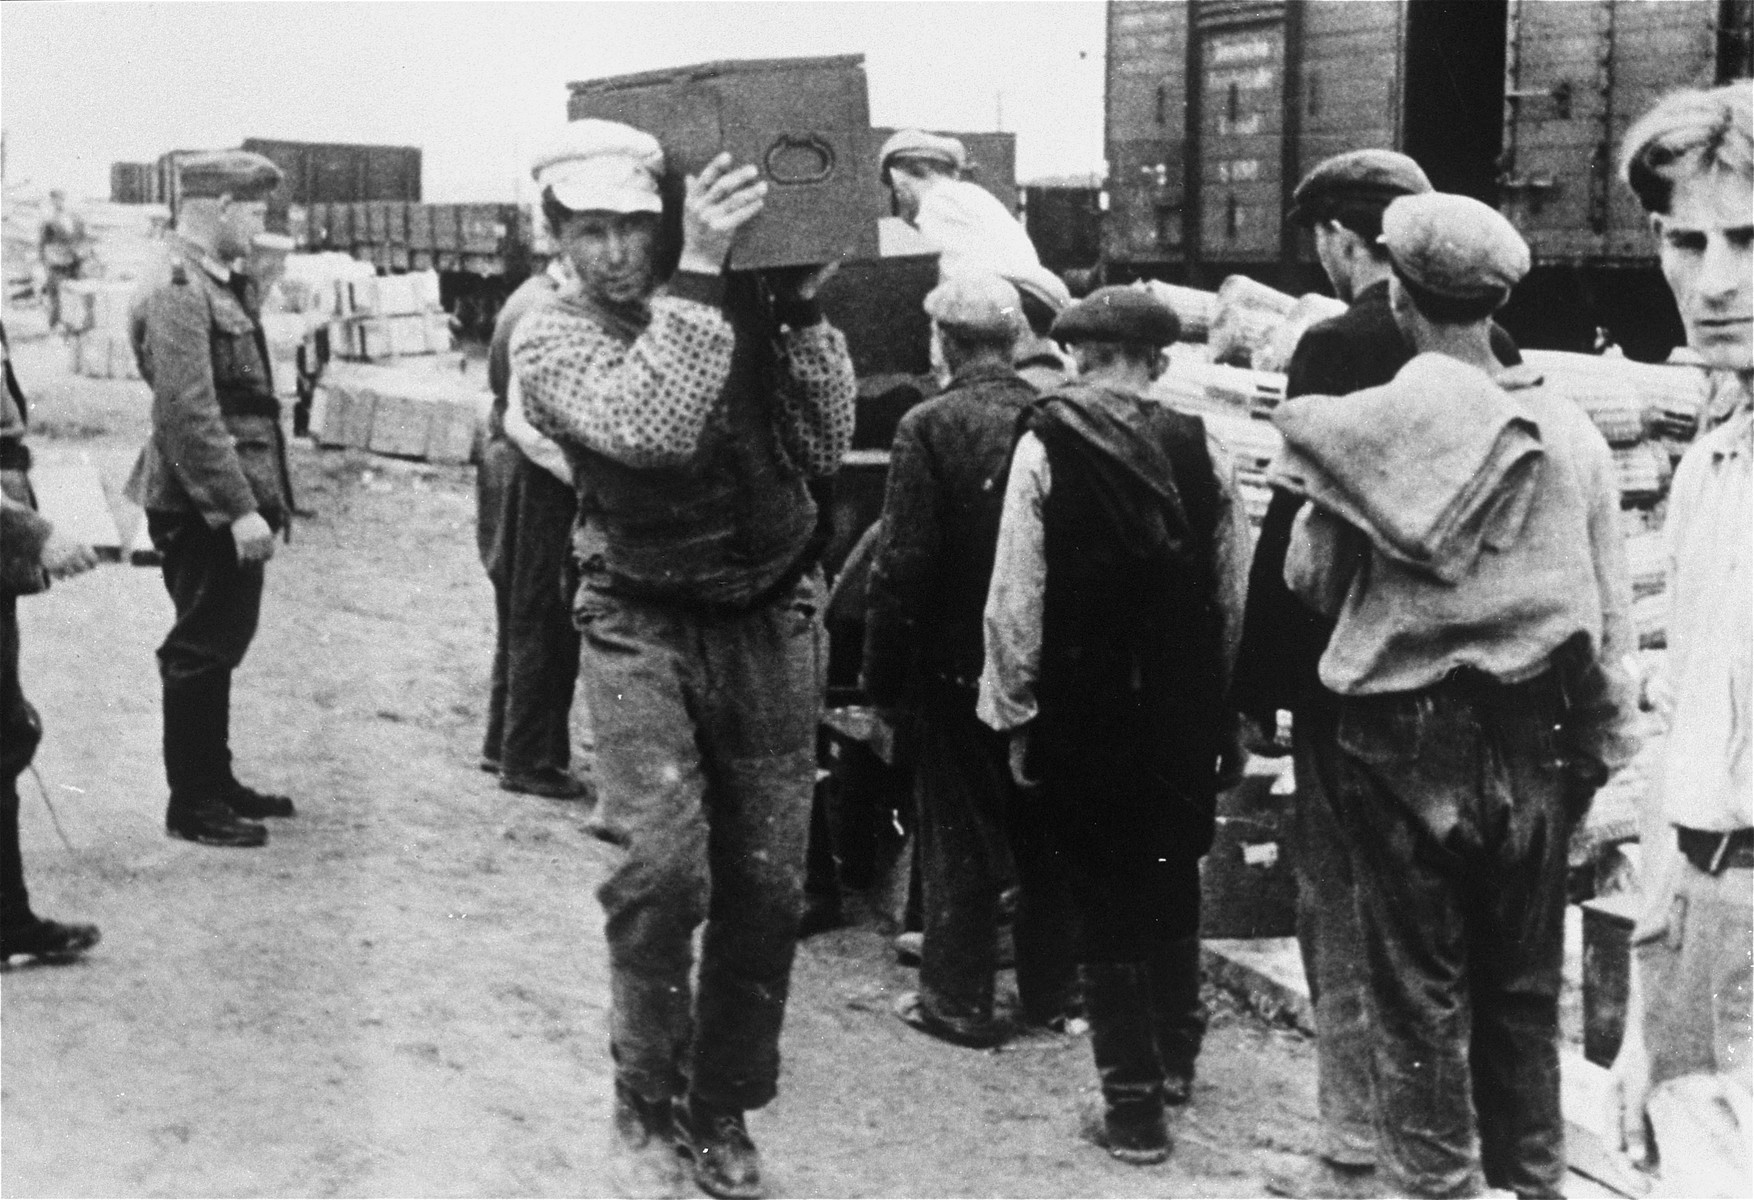 Jews at forced labor unloading artillery munitions at a Wehrmacht supply depot.